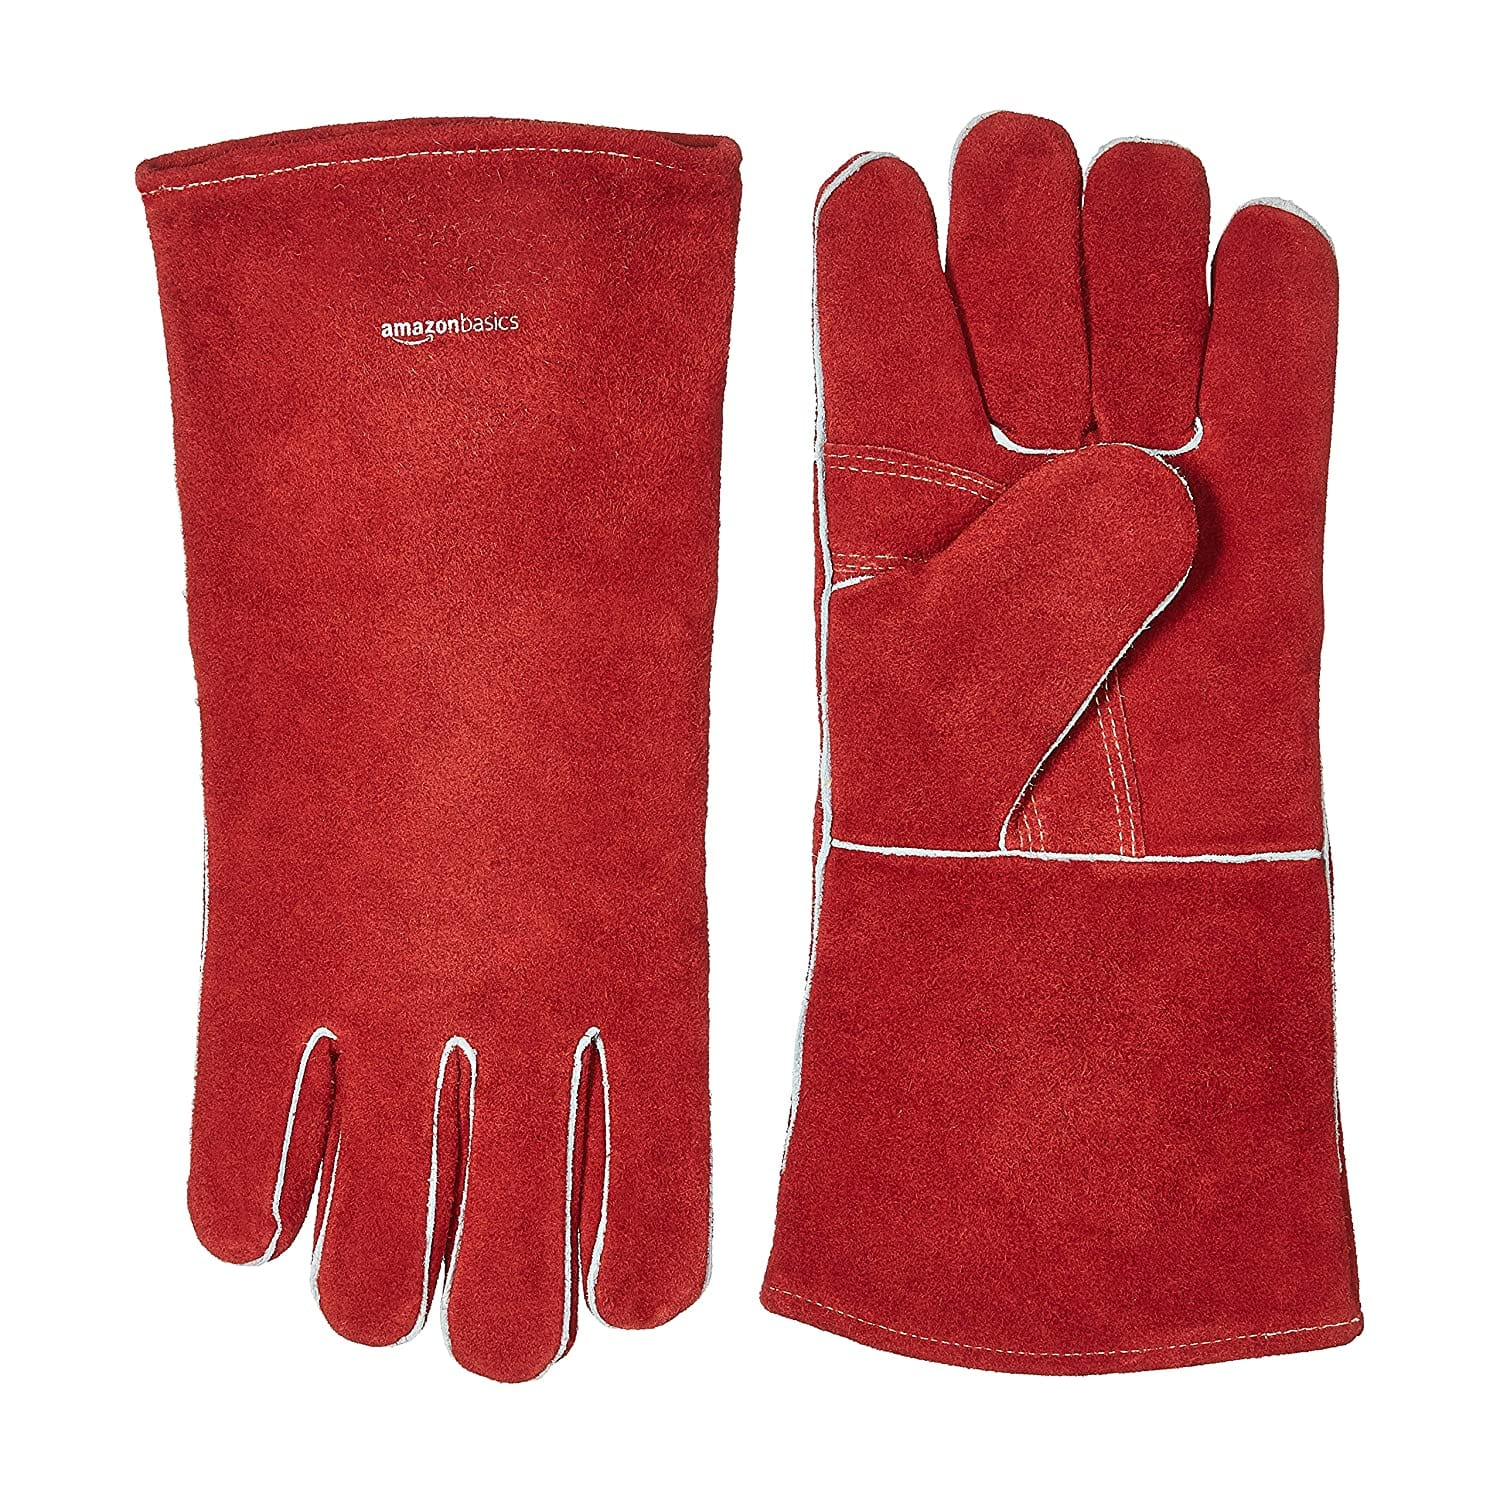 2-Pack AmazonBasics Welding Gloves: Black $4.75, Red